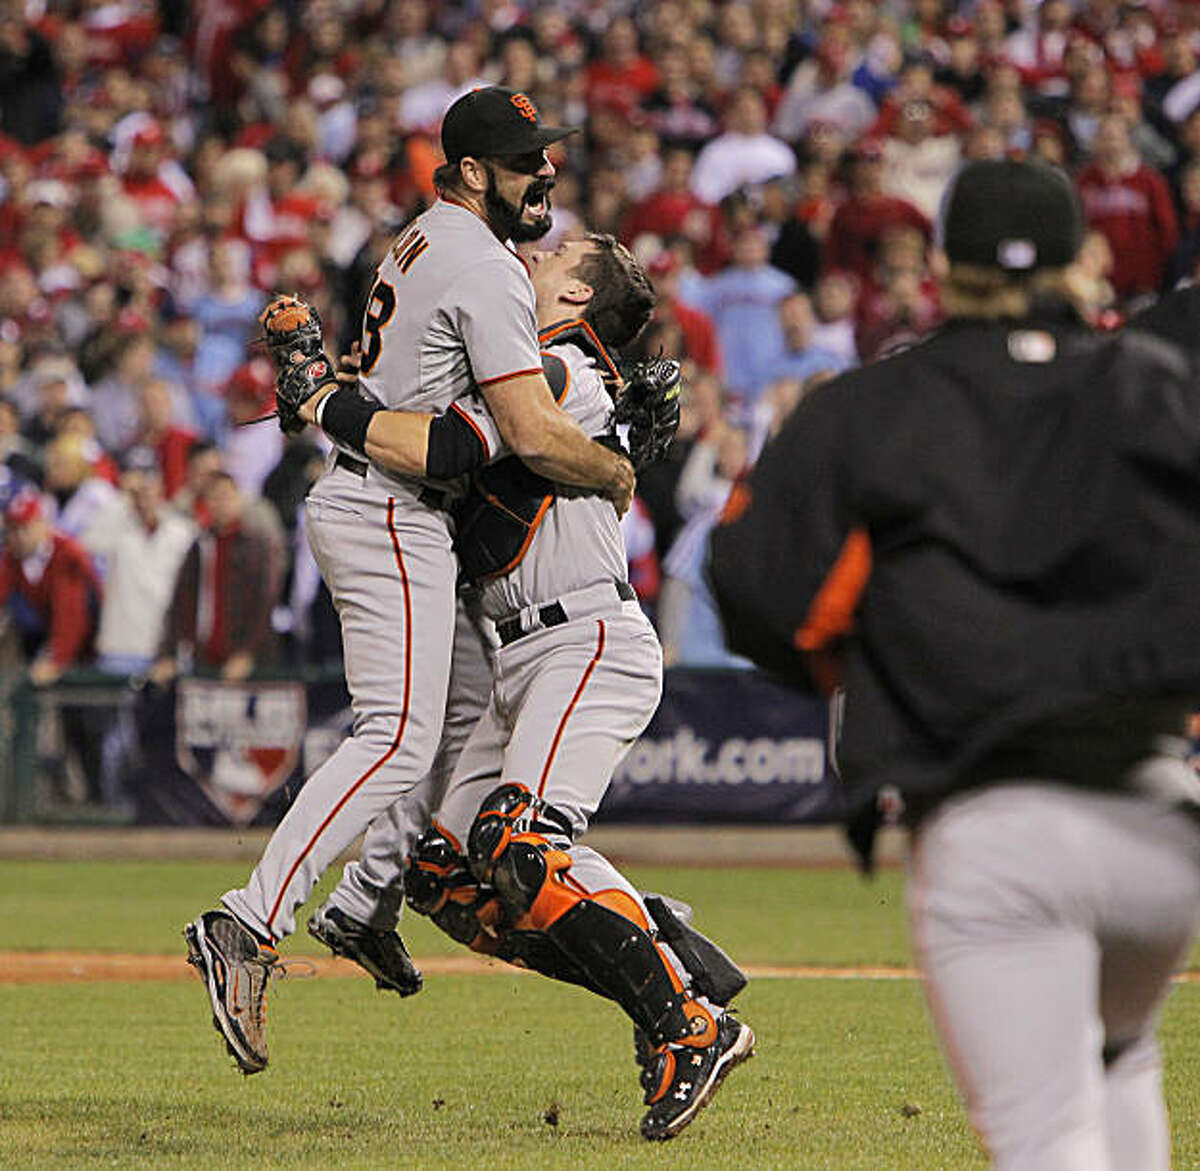 Brian Wilson and Buster Posey celebrate the Giants' victory in Game 6 of the NLCS on Saturday at Citizens Bank Park in Philadelphia.